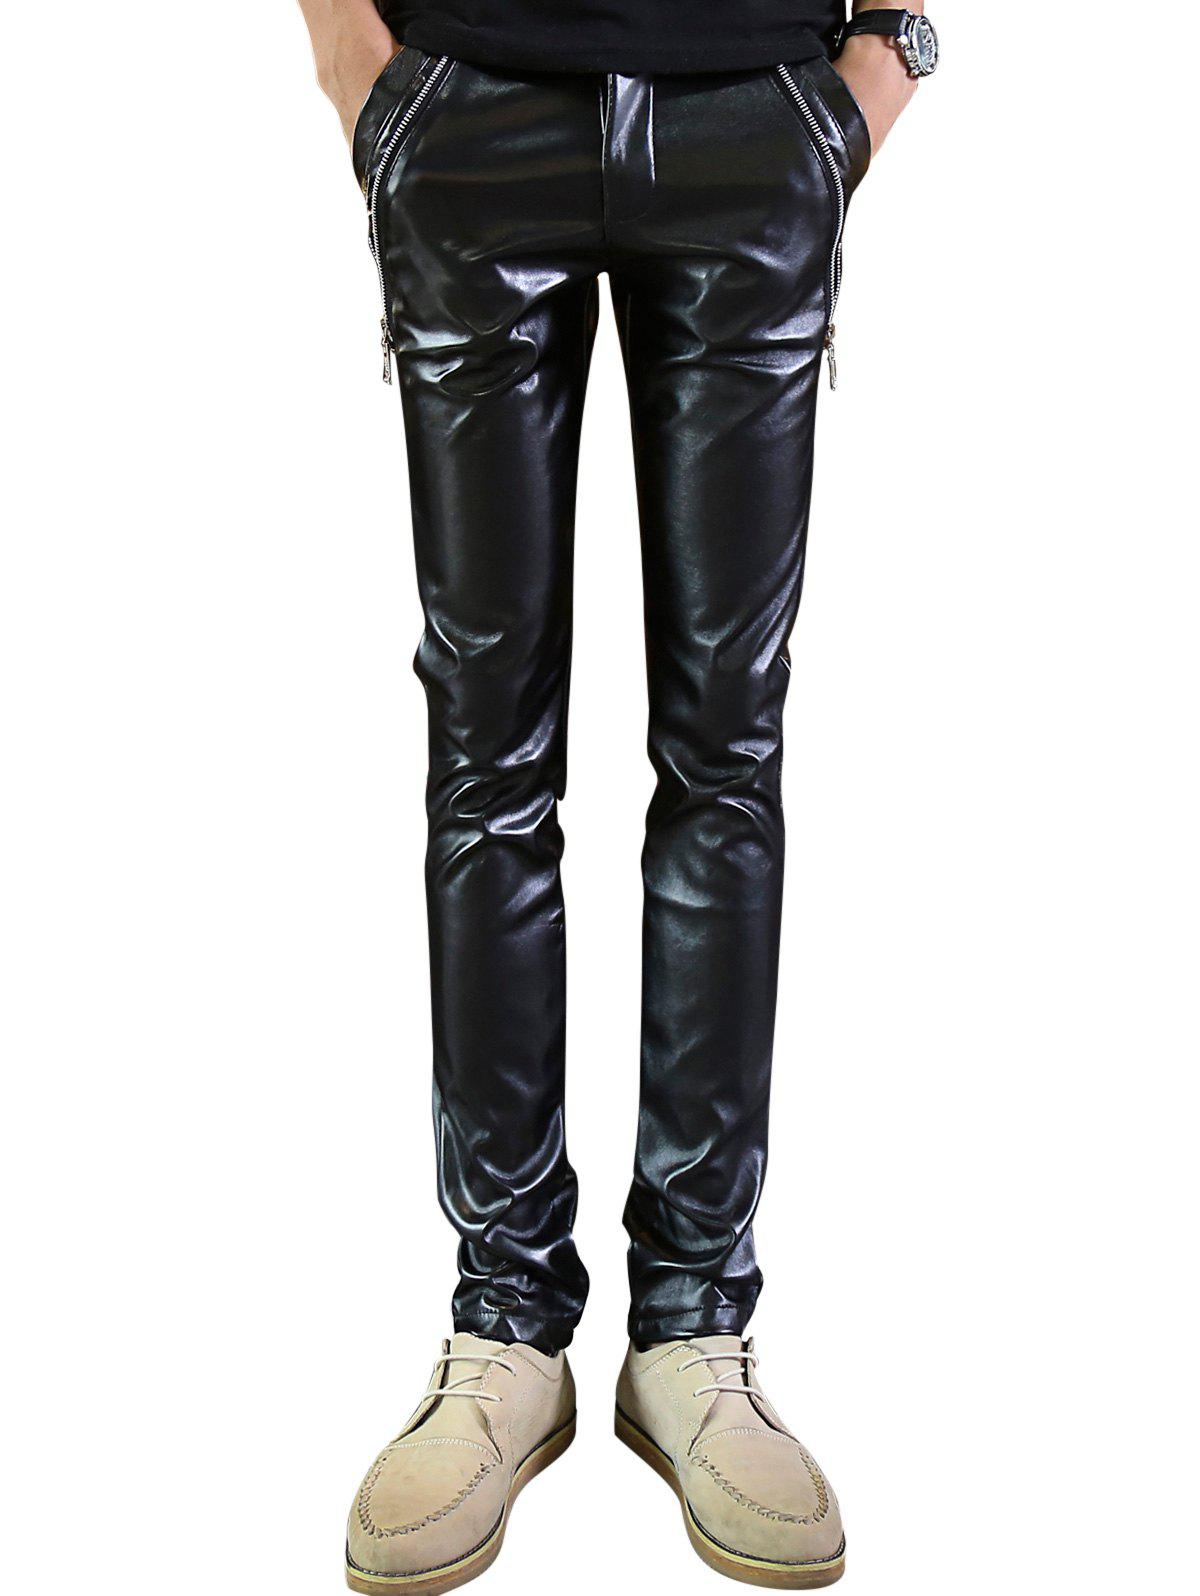 Zipper Embellished Skinny Faux Leather Pants - Noir 36